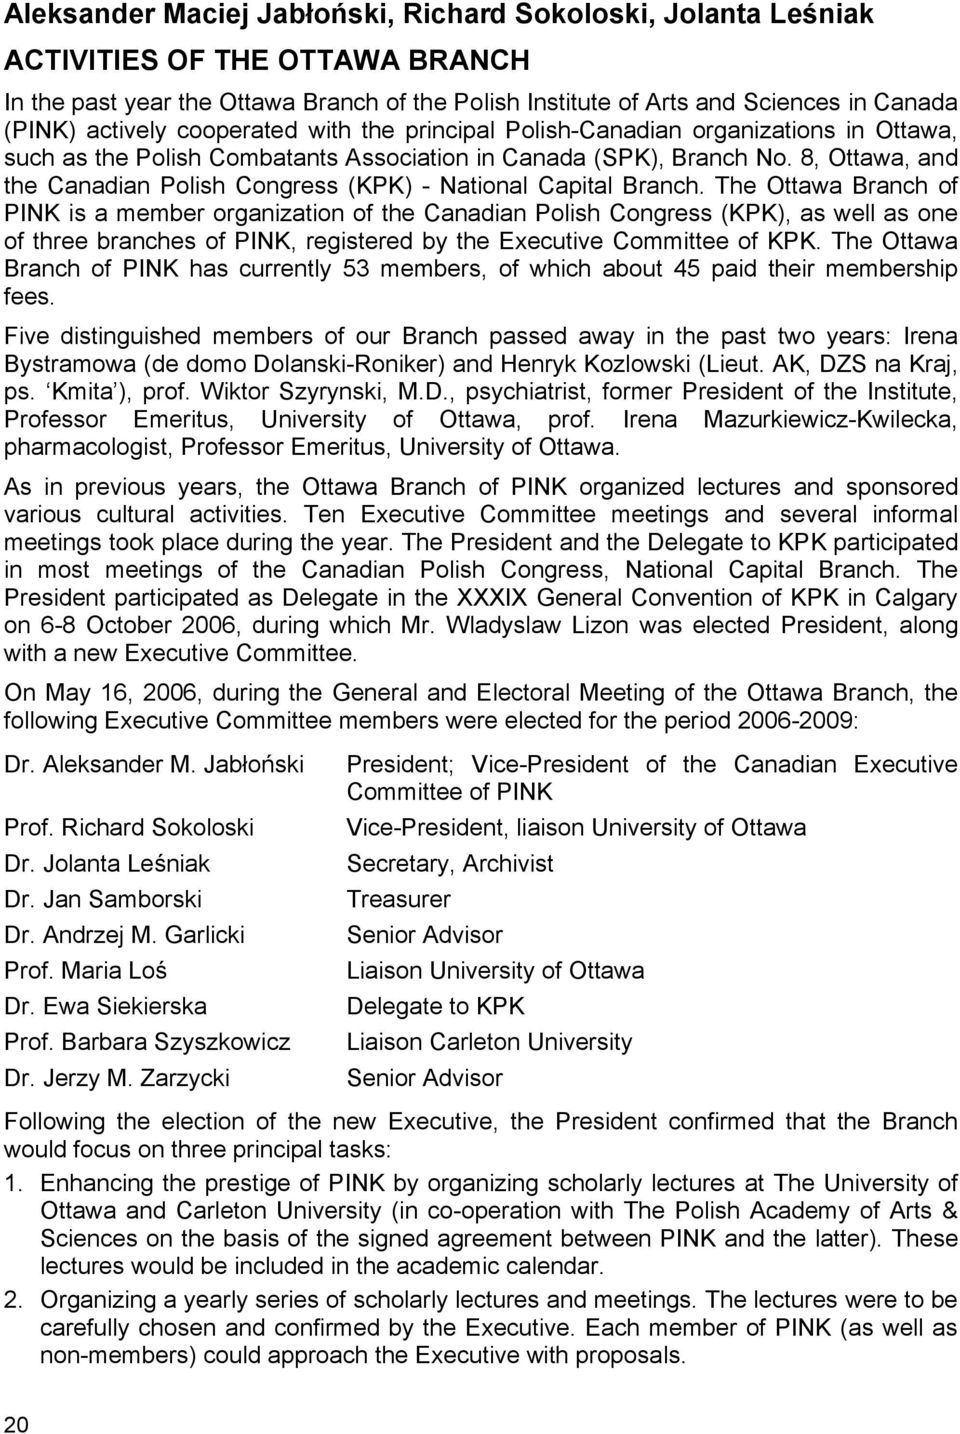 8, Ottawa, and the Canadian Polish Congress (KPK) - National Capital Branch.